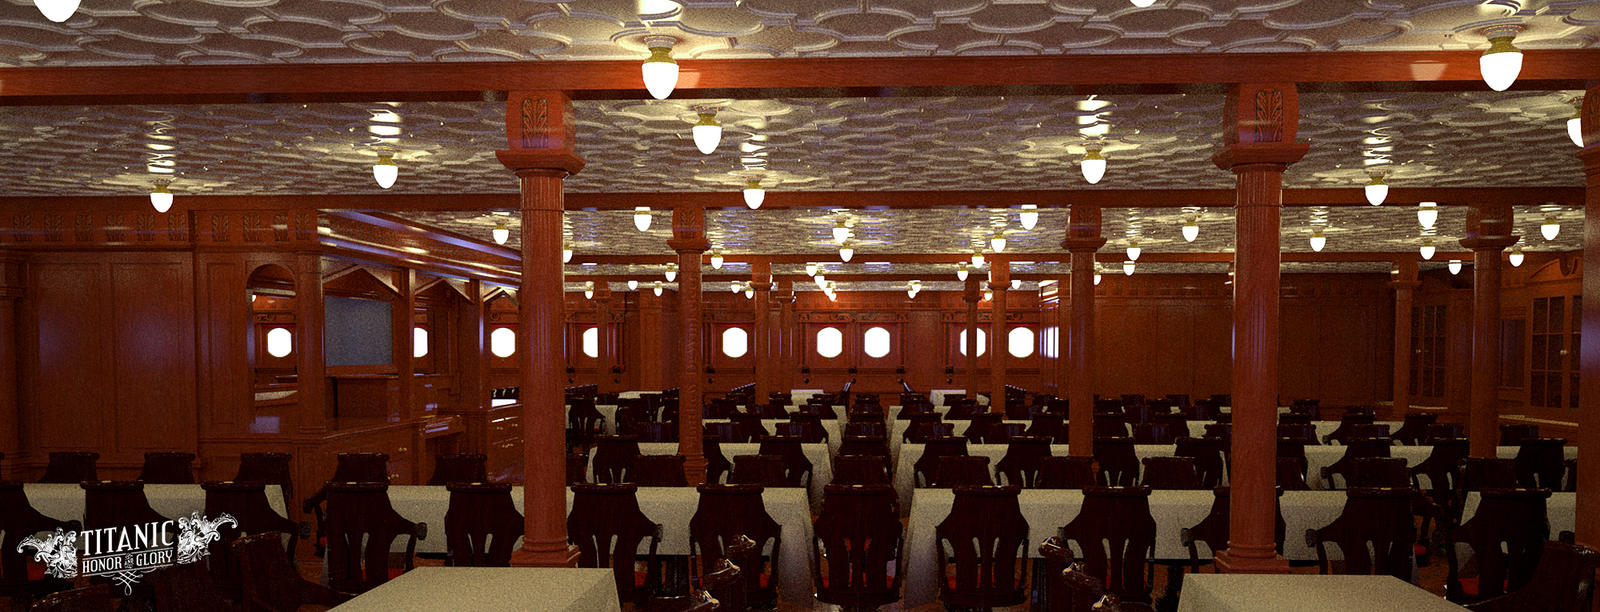 titanic s second class dining saloon by